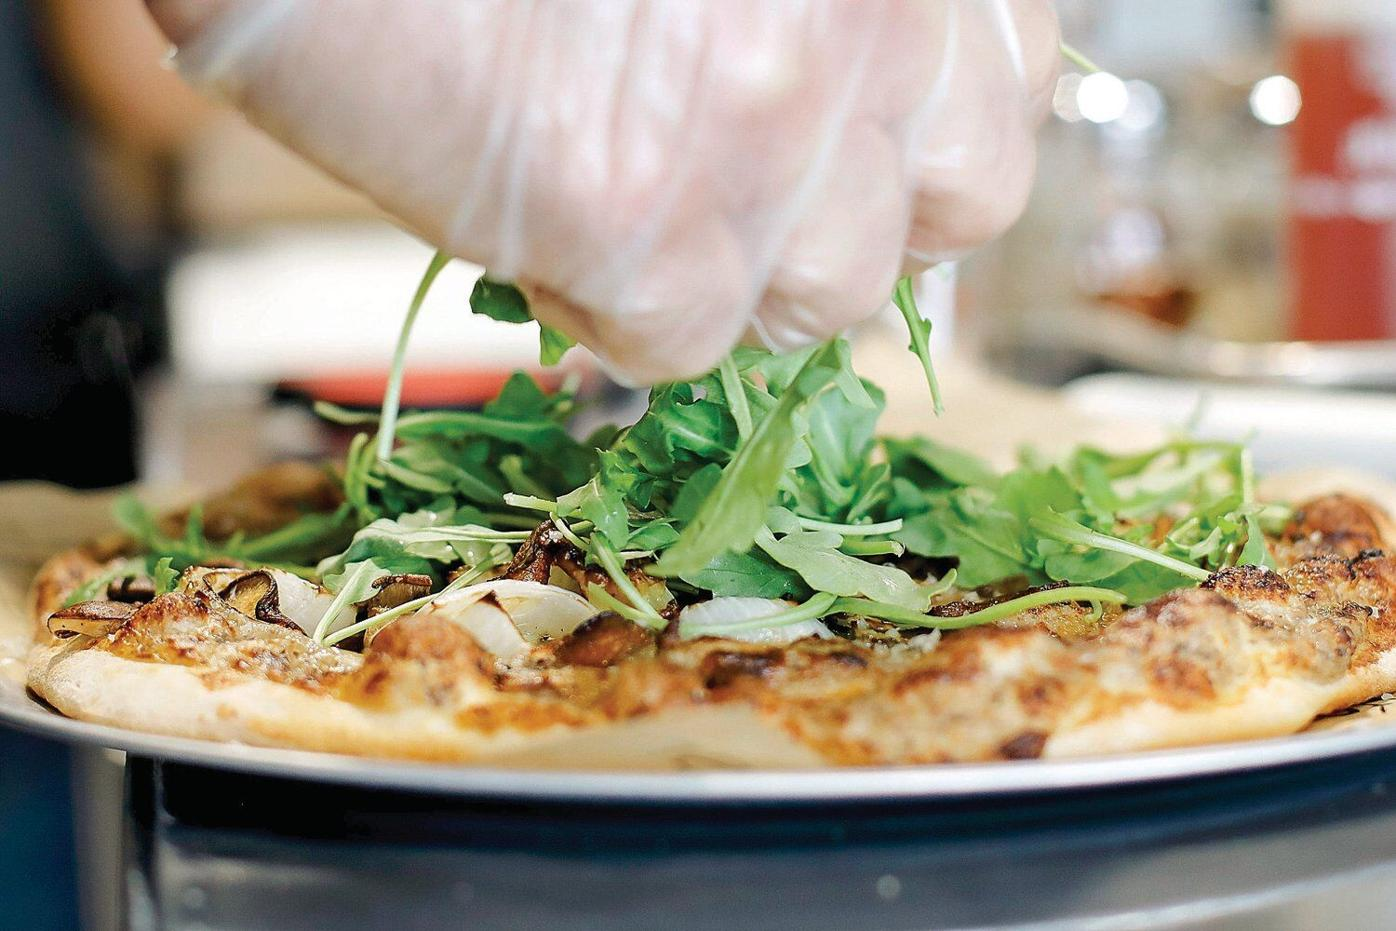 Crust 'on a mission to create the perfect pizza'